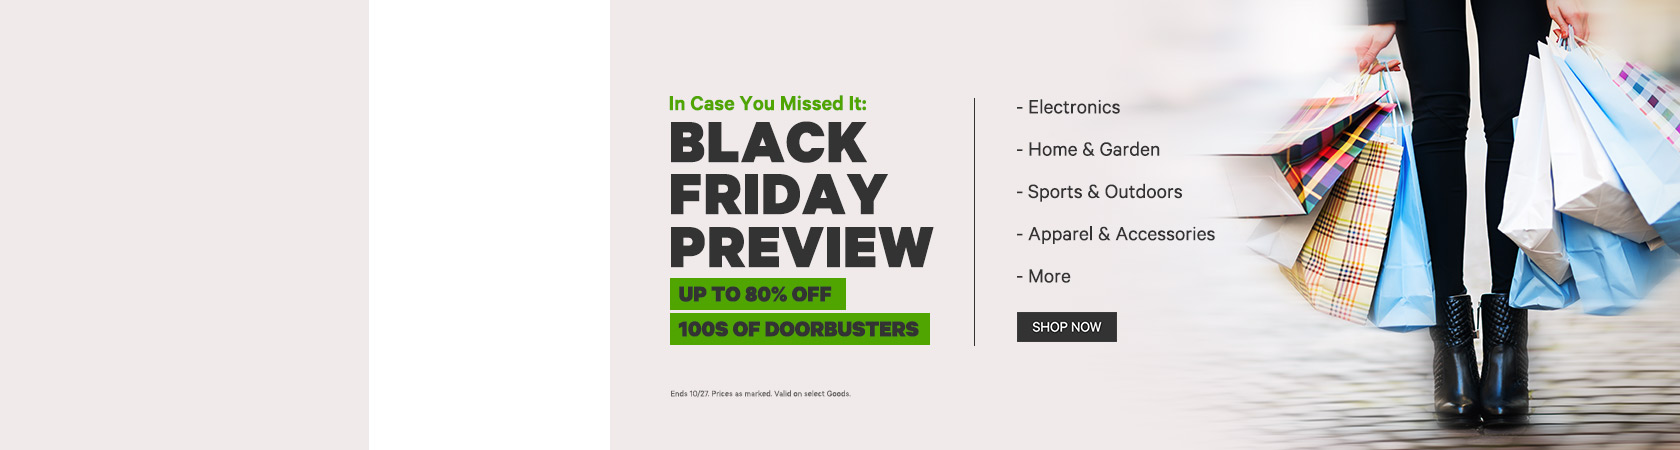 In Case You Missed It Black Friday